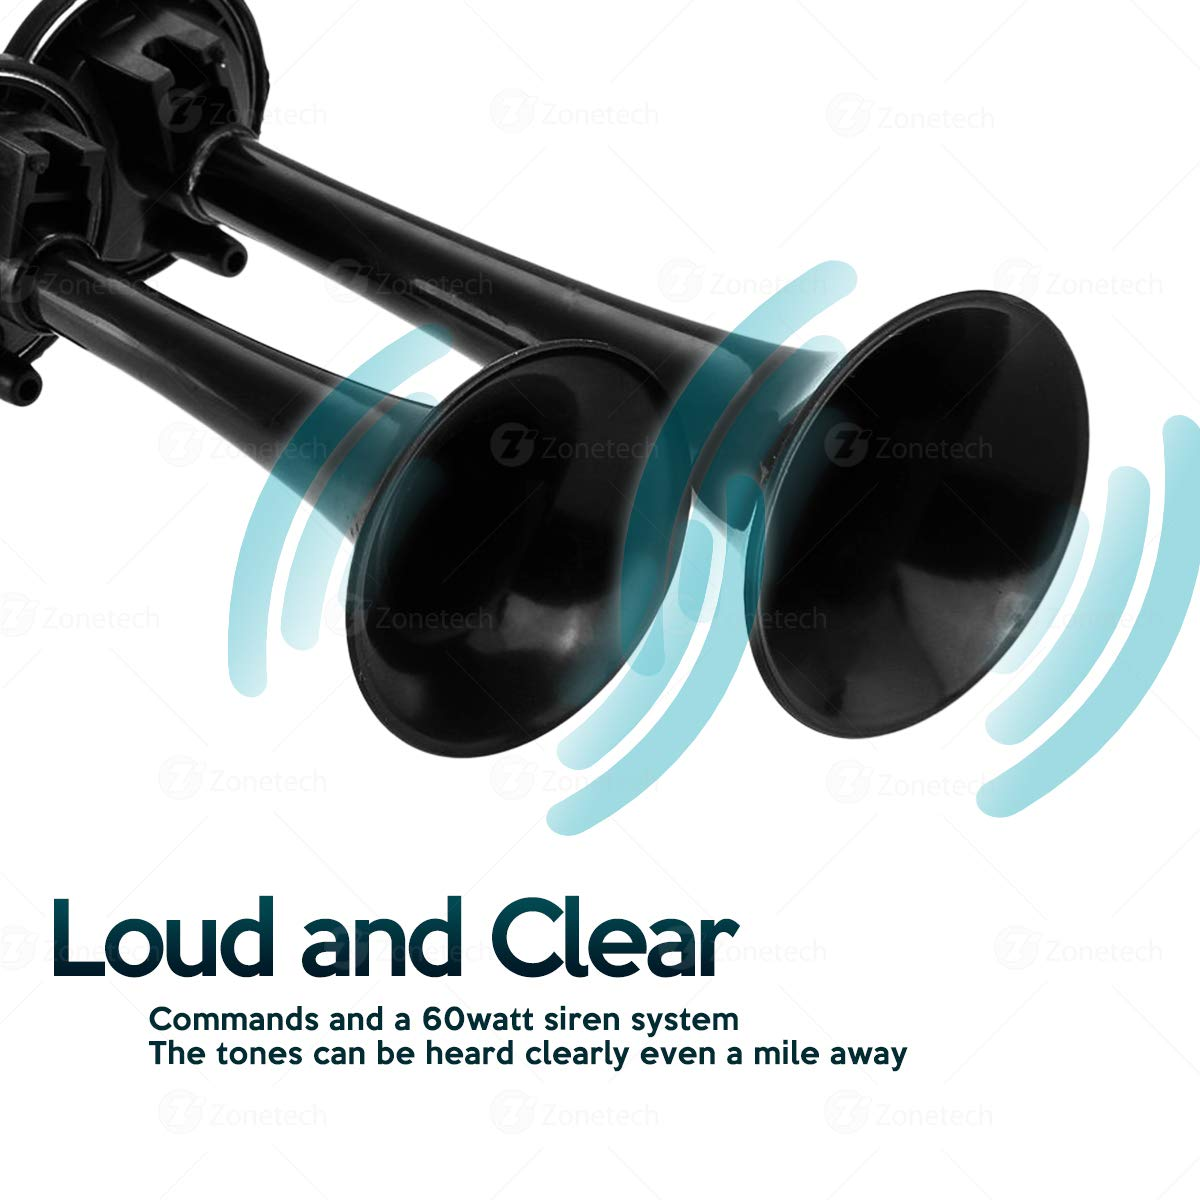 12V Dual Trumpet Air Horn -Zone Tech Premium Quality Classic Black Super Loud Powerful Train Sound Shiny Dual Car Van Truck Boat Air Horn by ZONETECH (Image #2)